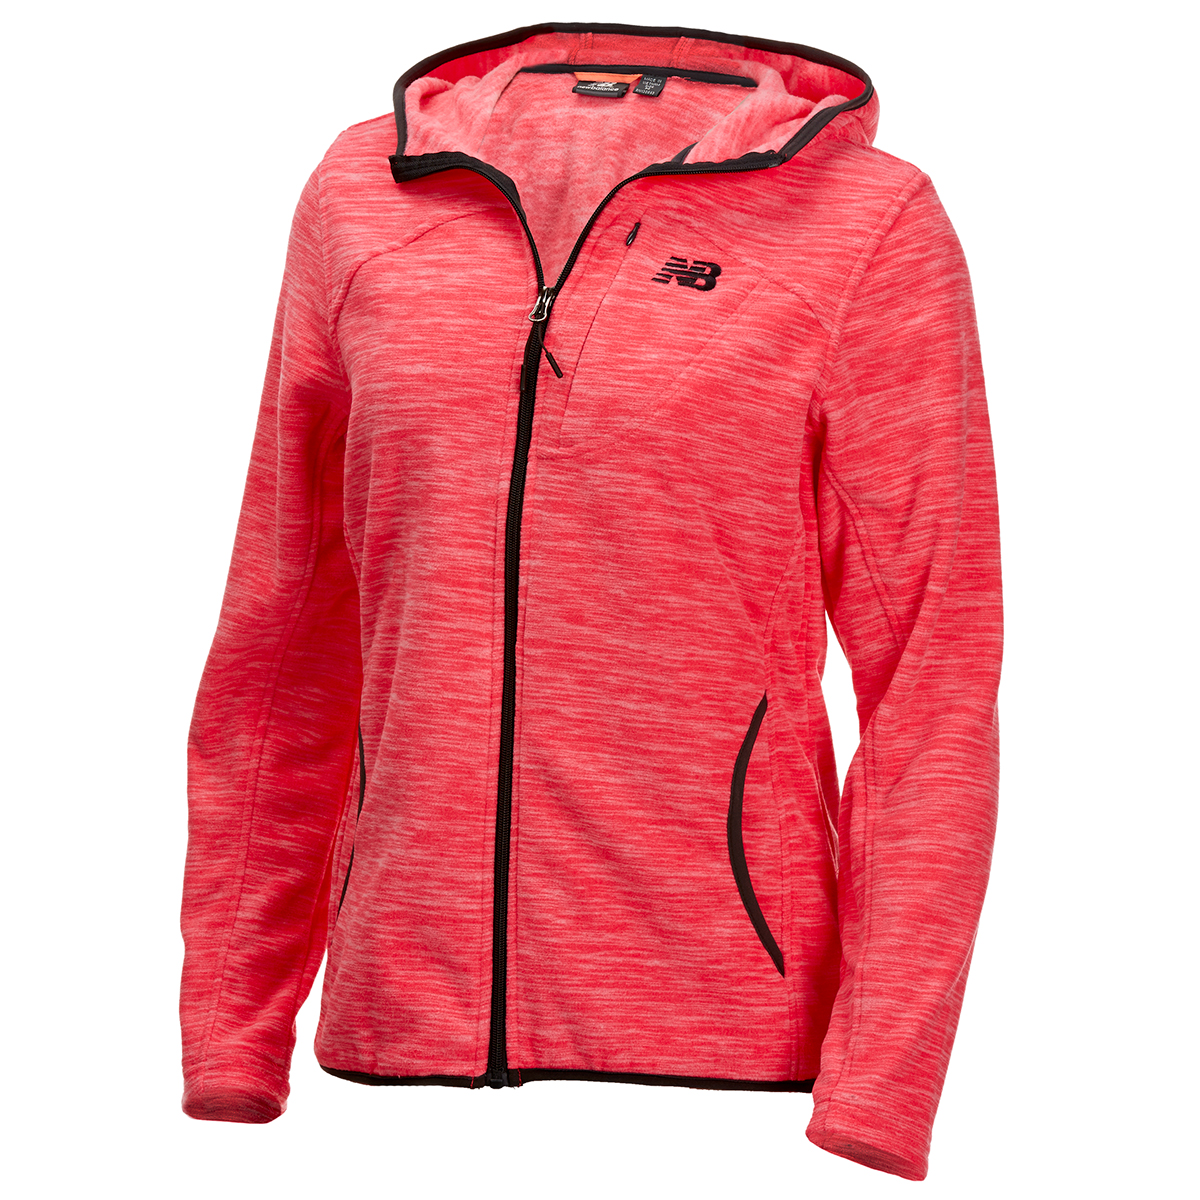 New Balance Women's Polar Fleece Space-Dye Full-Zip Hoodie - Red, XL